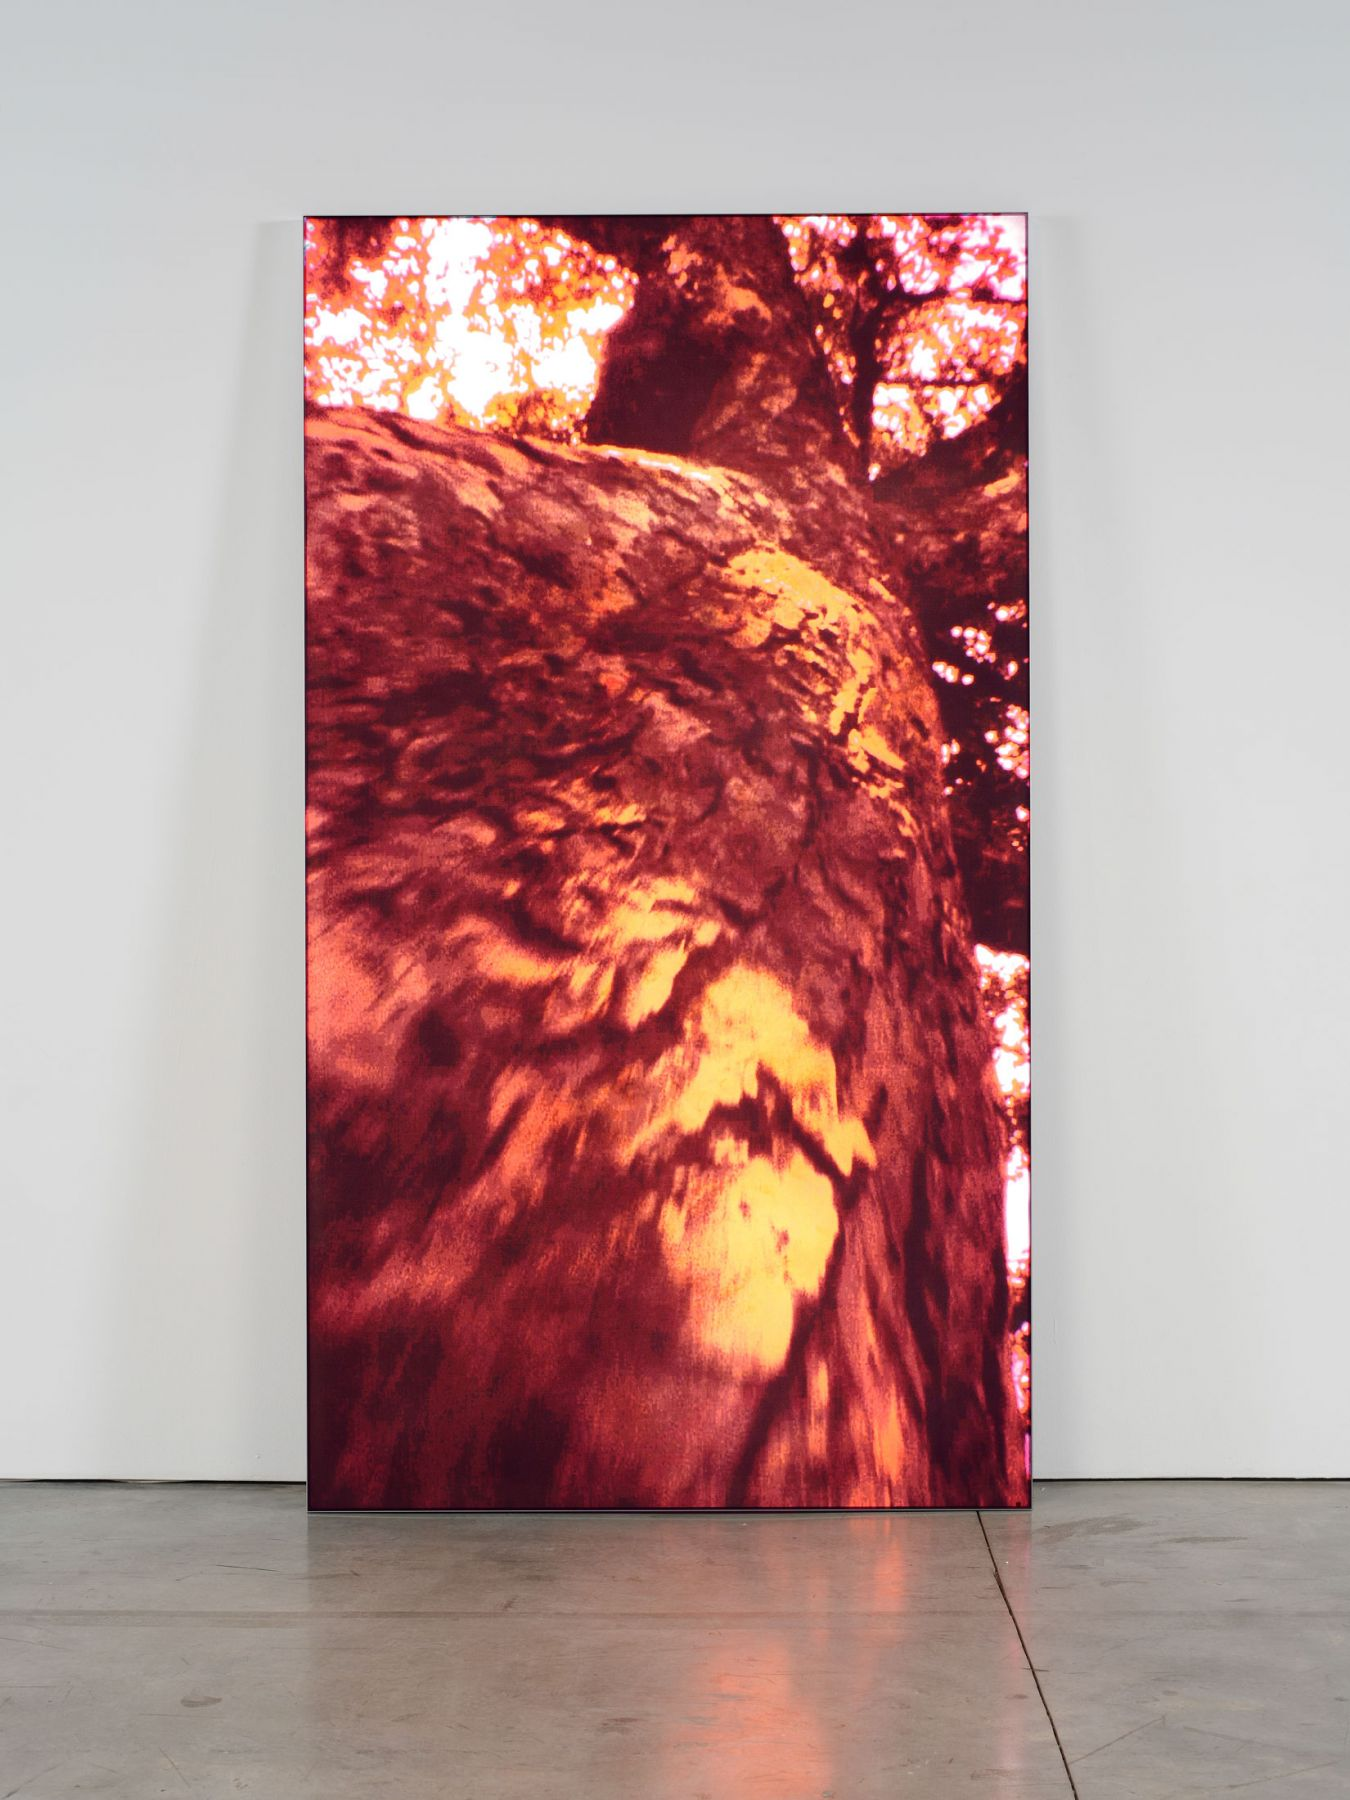 Pipilotti Rist, Untitled 2, 2009